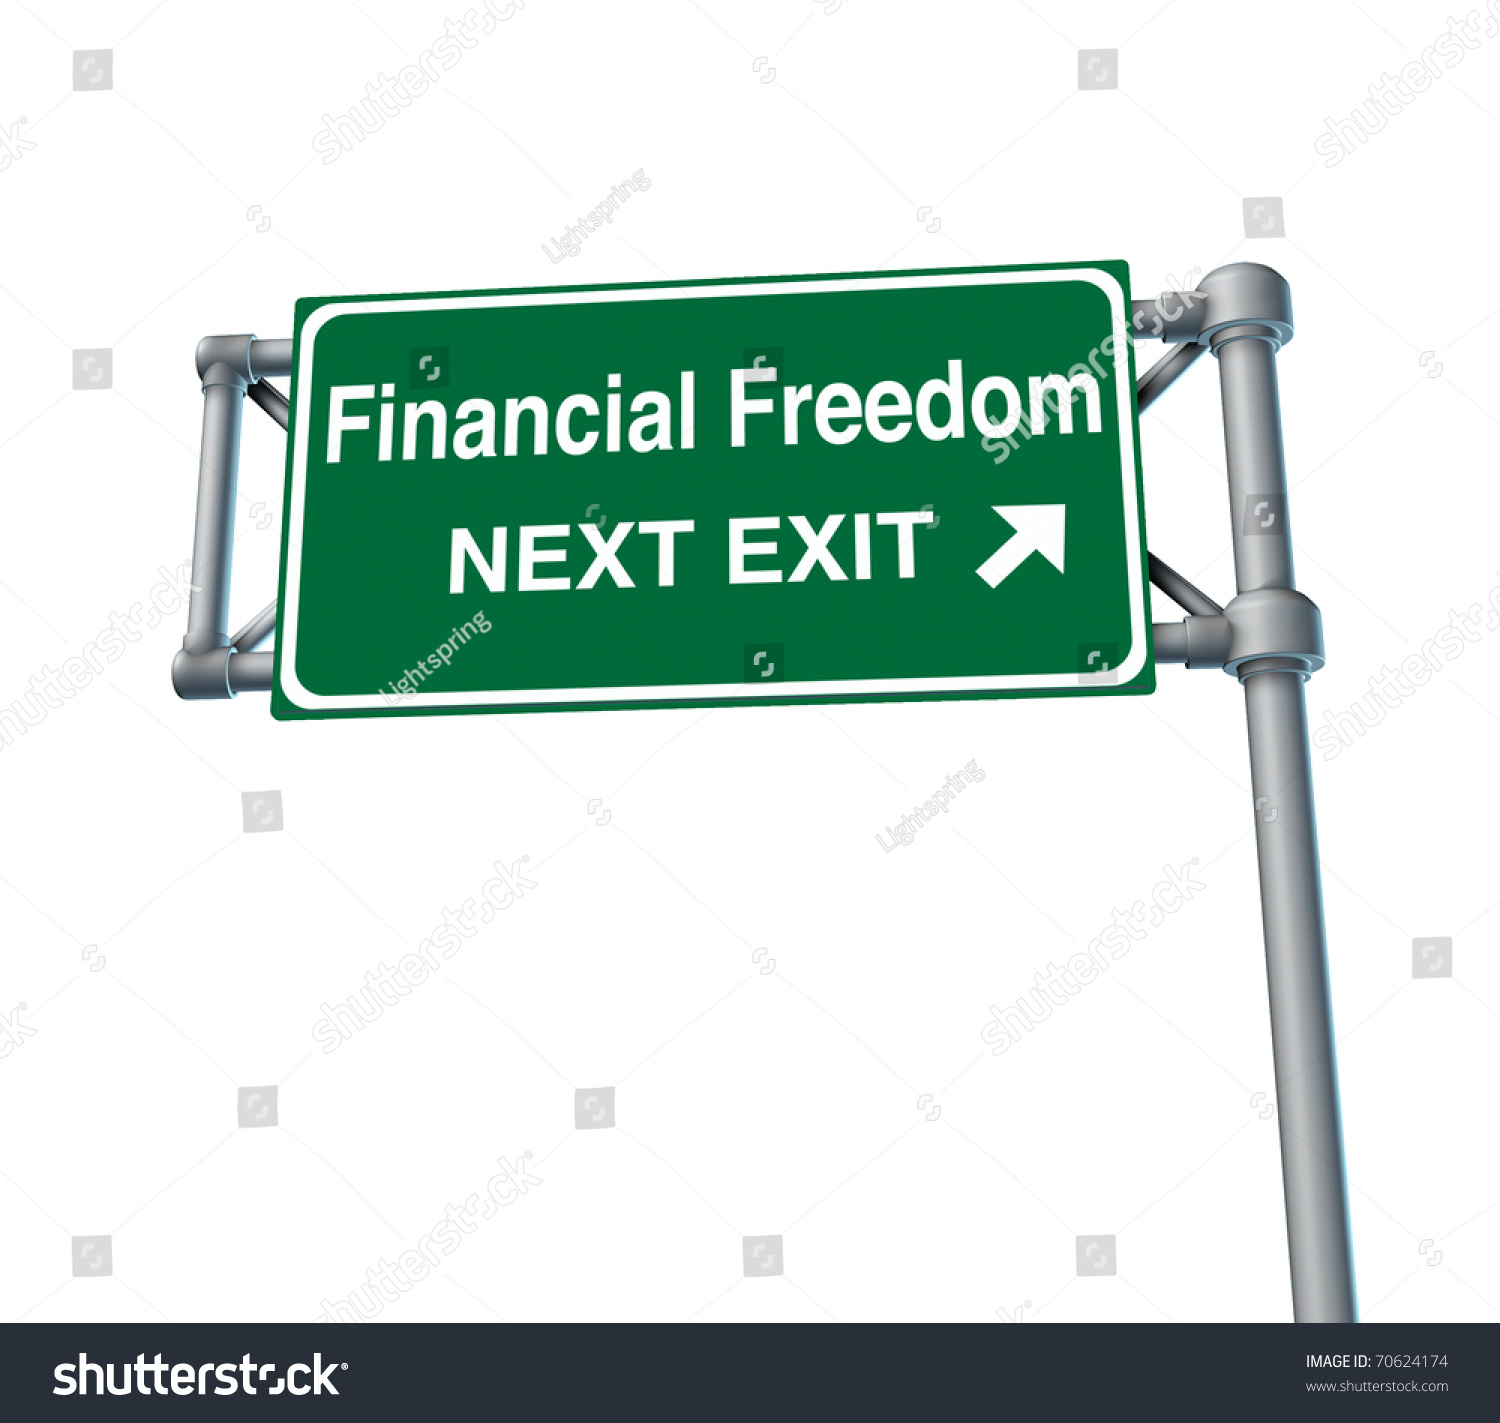 Finance Sign: Financial Freedom Business Freeway Exit Sign Stock